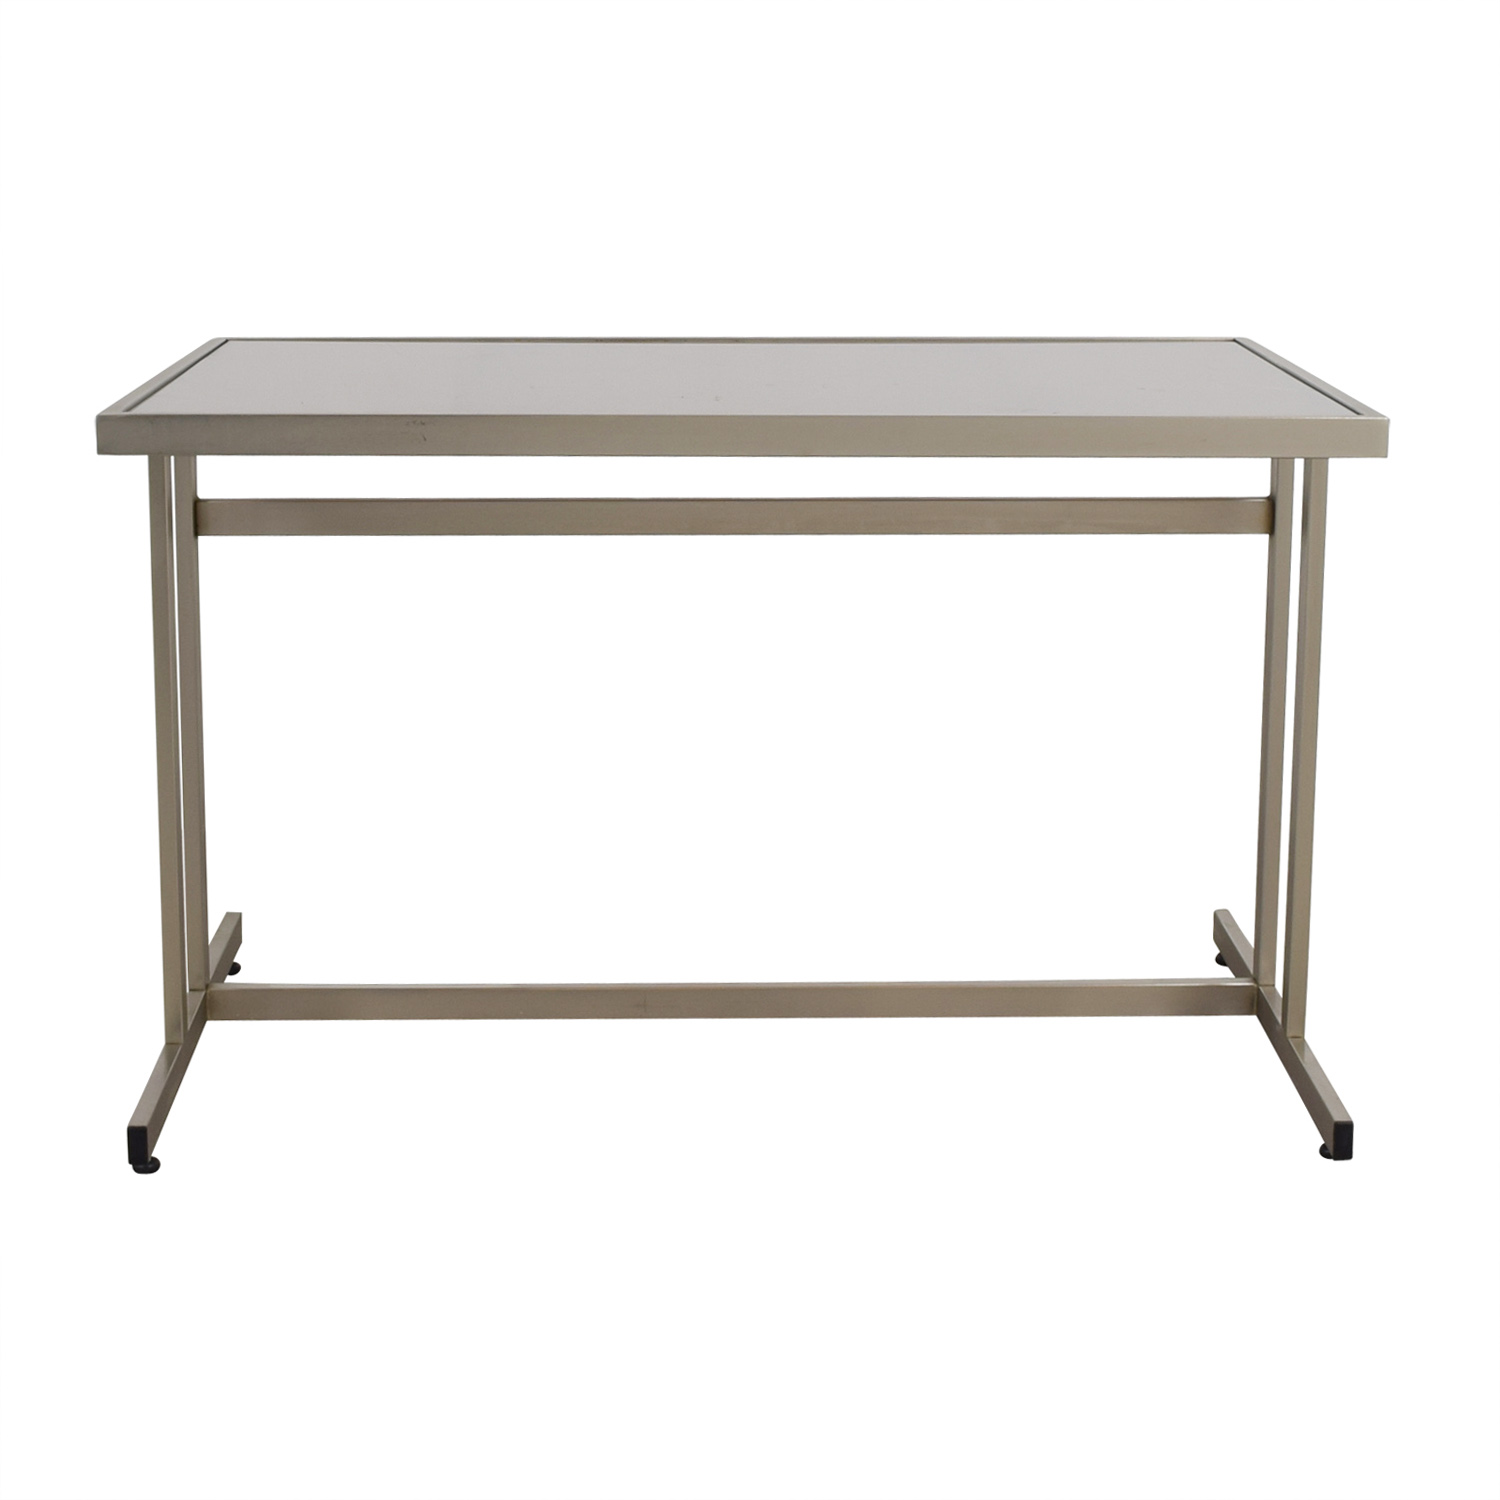 CB2 CB2 Brushed Metal and Glass T-Leg Table or Desk nj